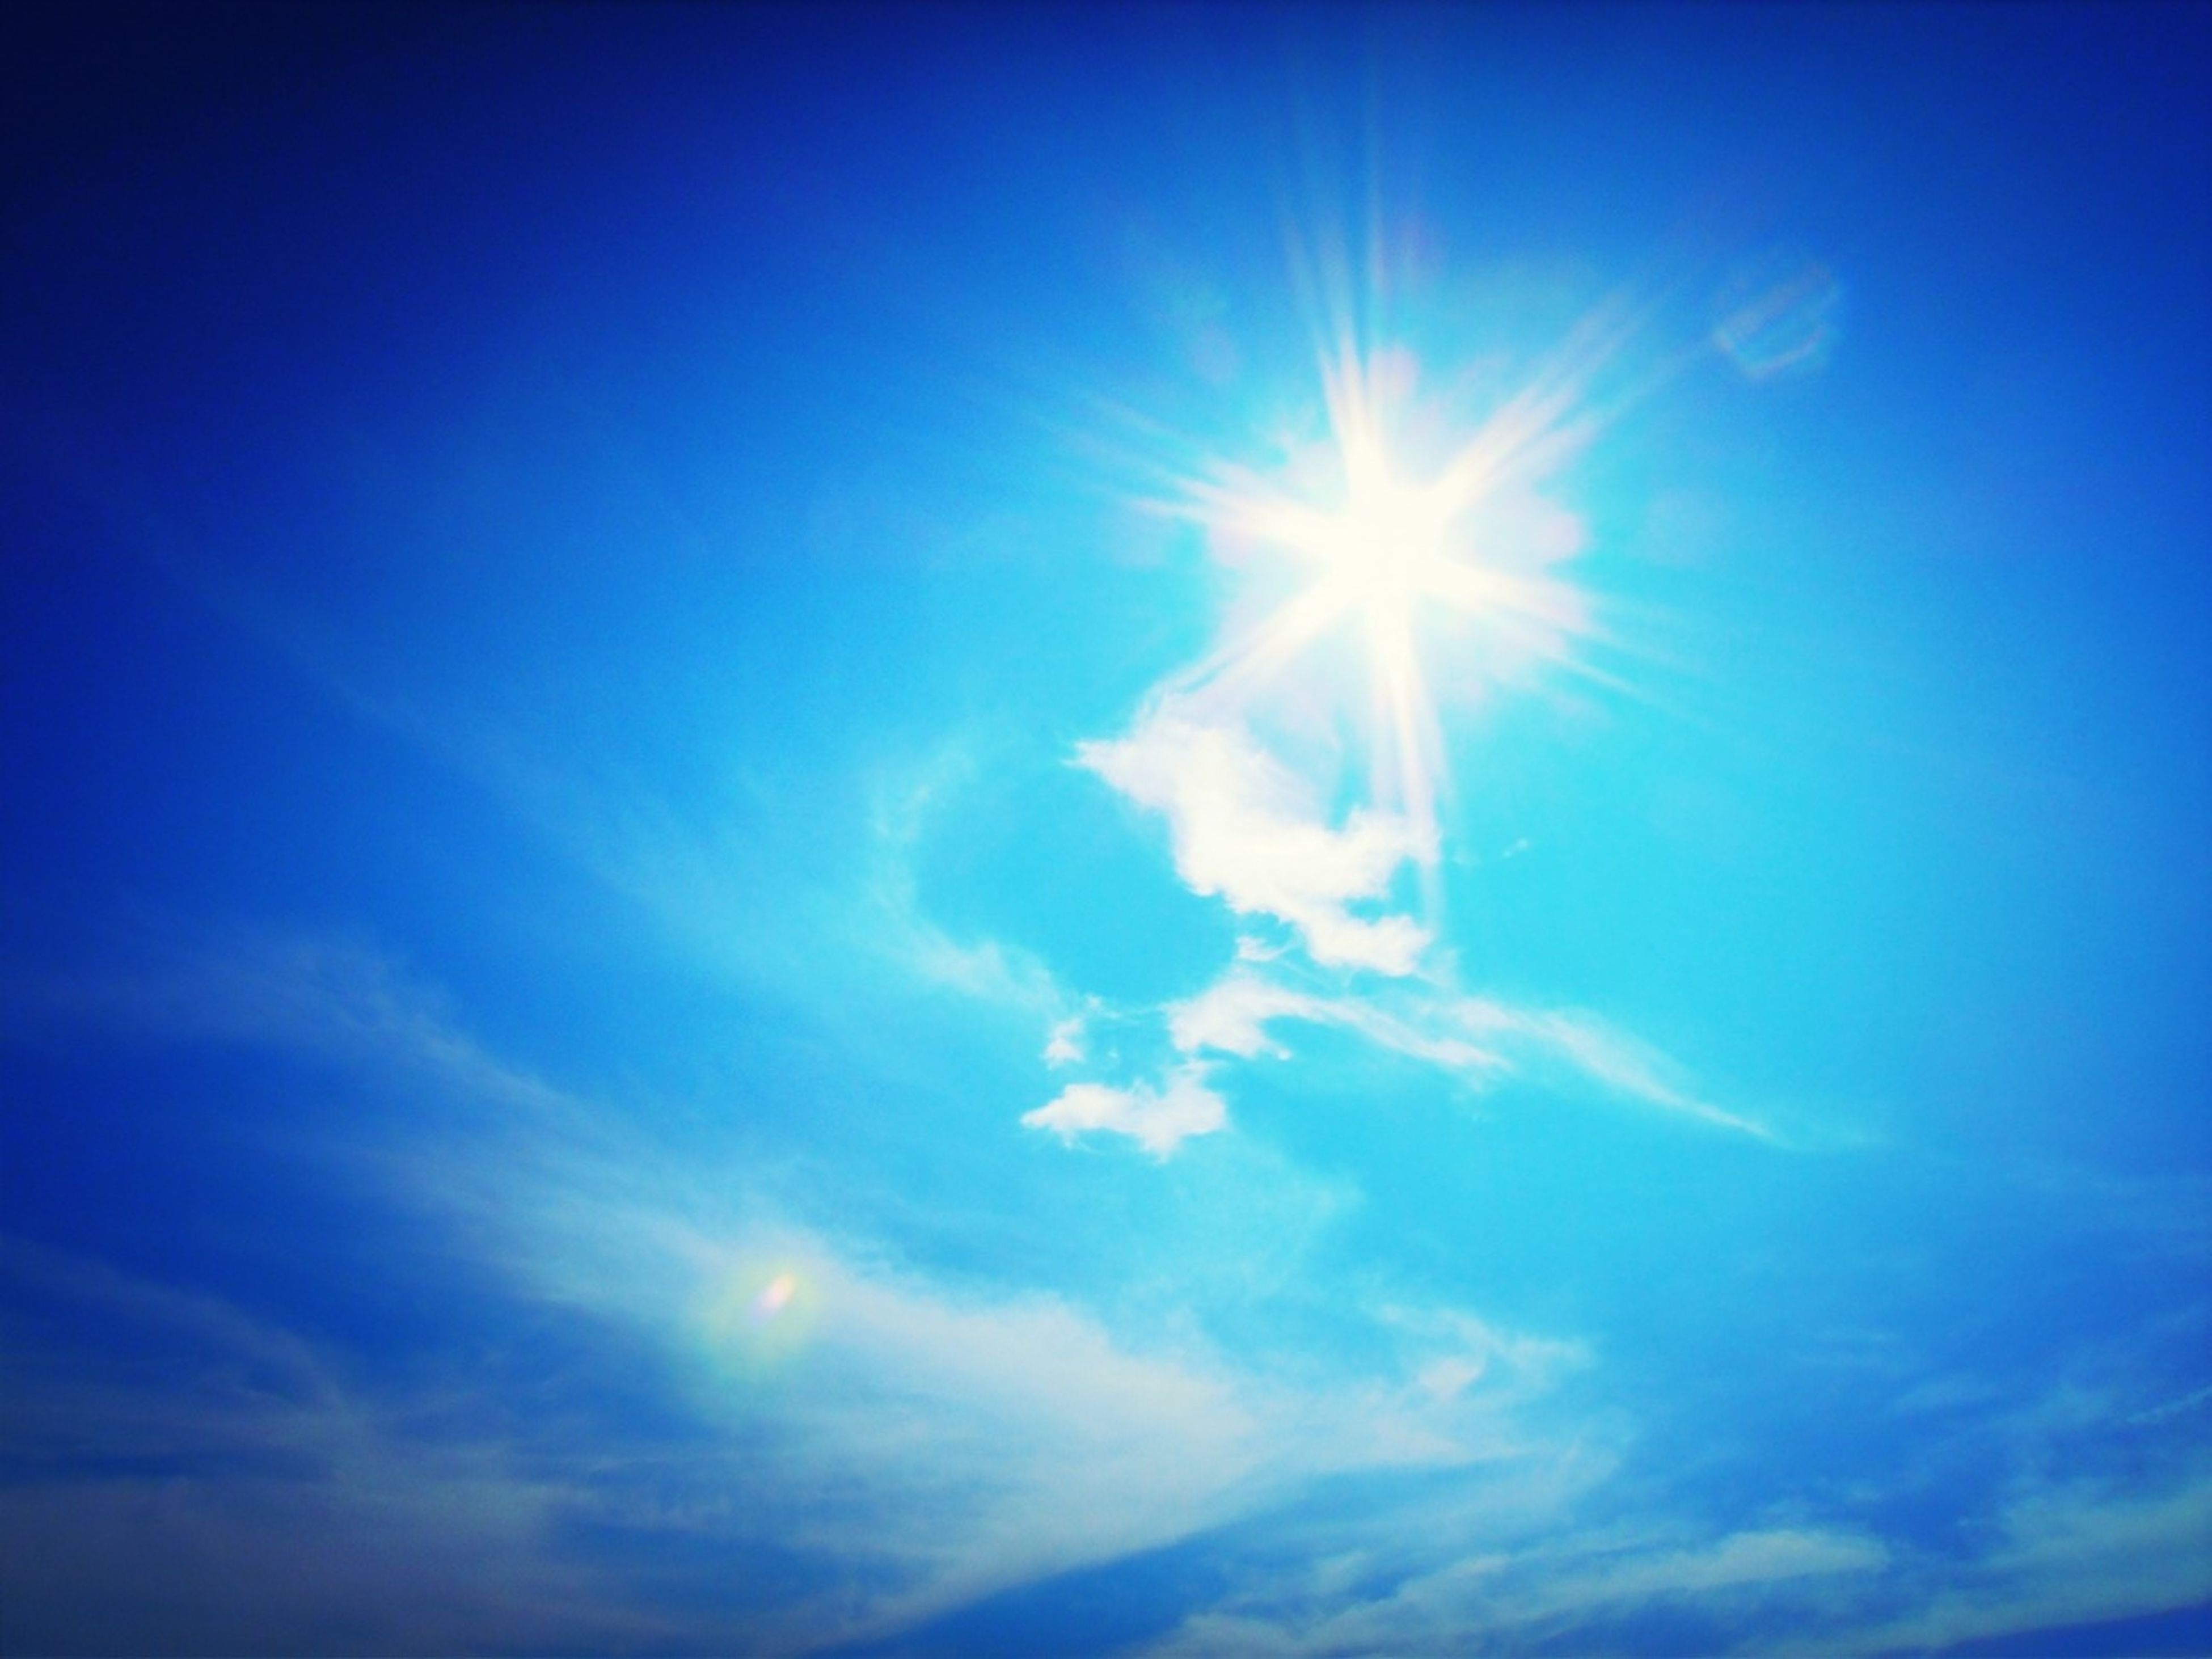 sun, blue, sunbeam, sunlight, low angle view, lens flare, sky, bright, beauty in nature, sunny, tranquility, nature, scenics, tranquil scene, cloud - sky, day, sky only, idyllic, outdoors, cloud